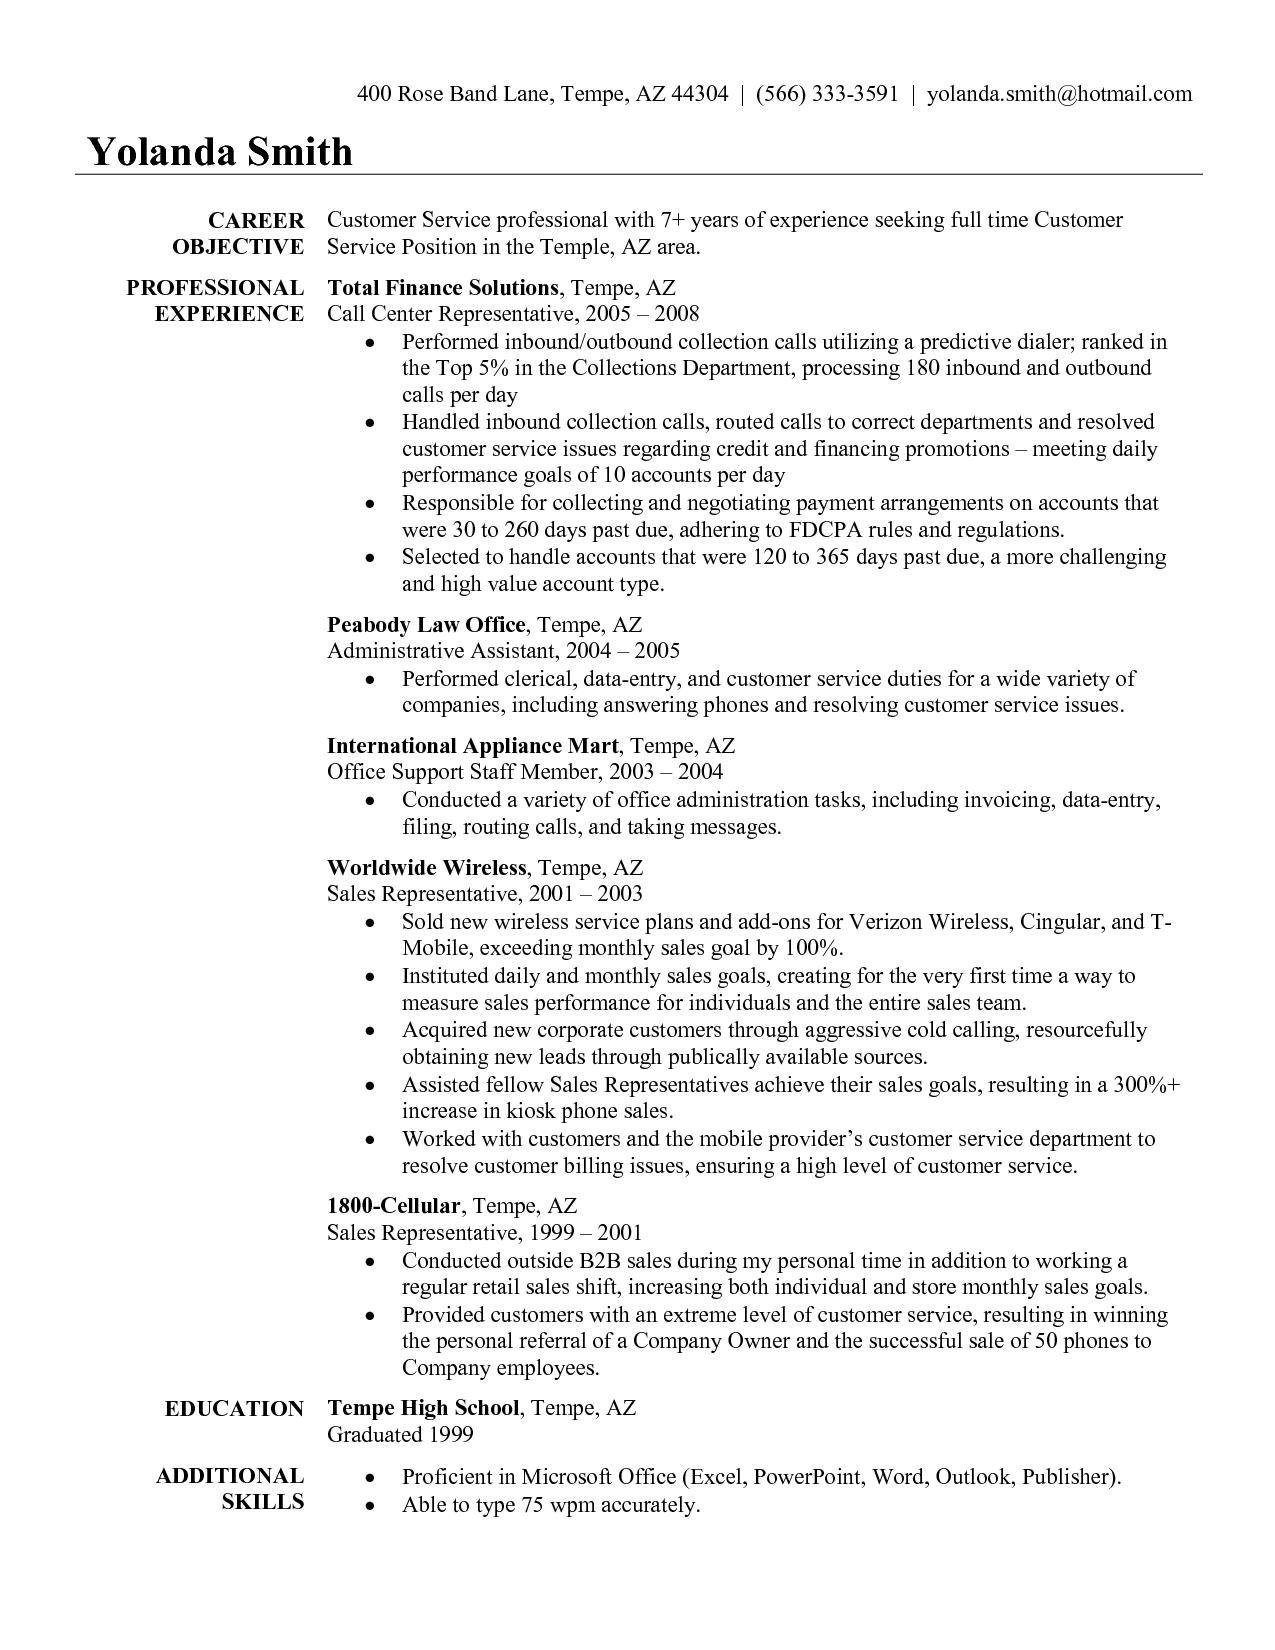 traffic customer resume examplescustomer service resume examplescustomer service resume examples - Entry Level Customer Service Resume